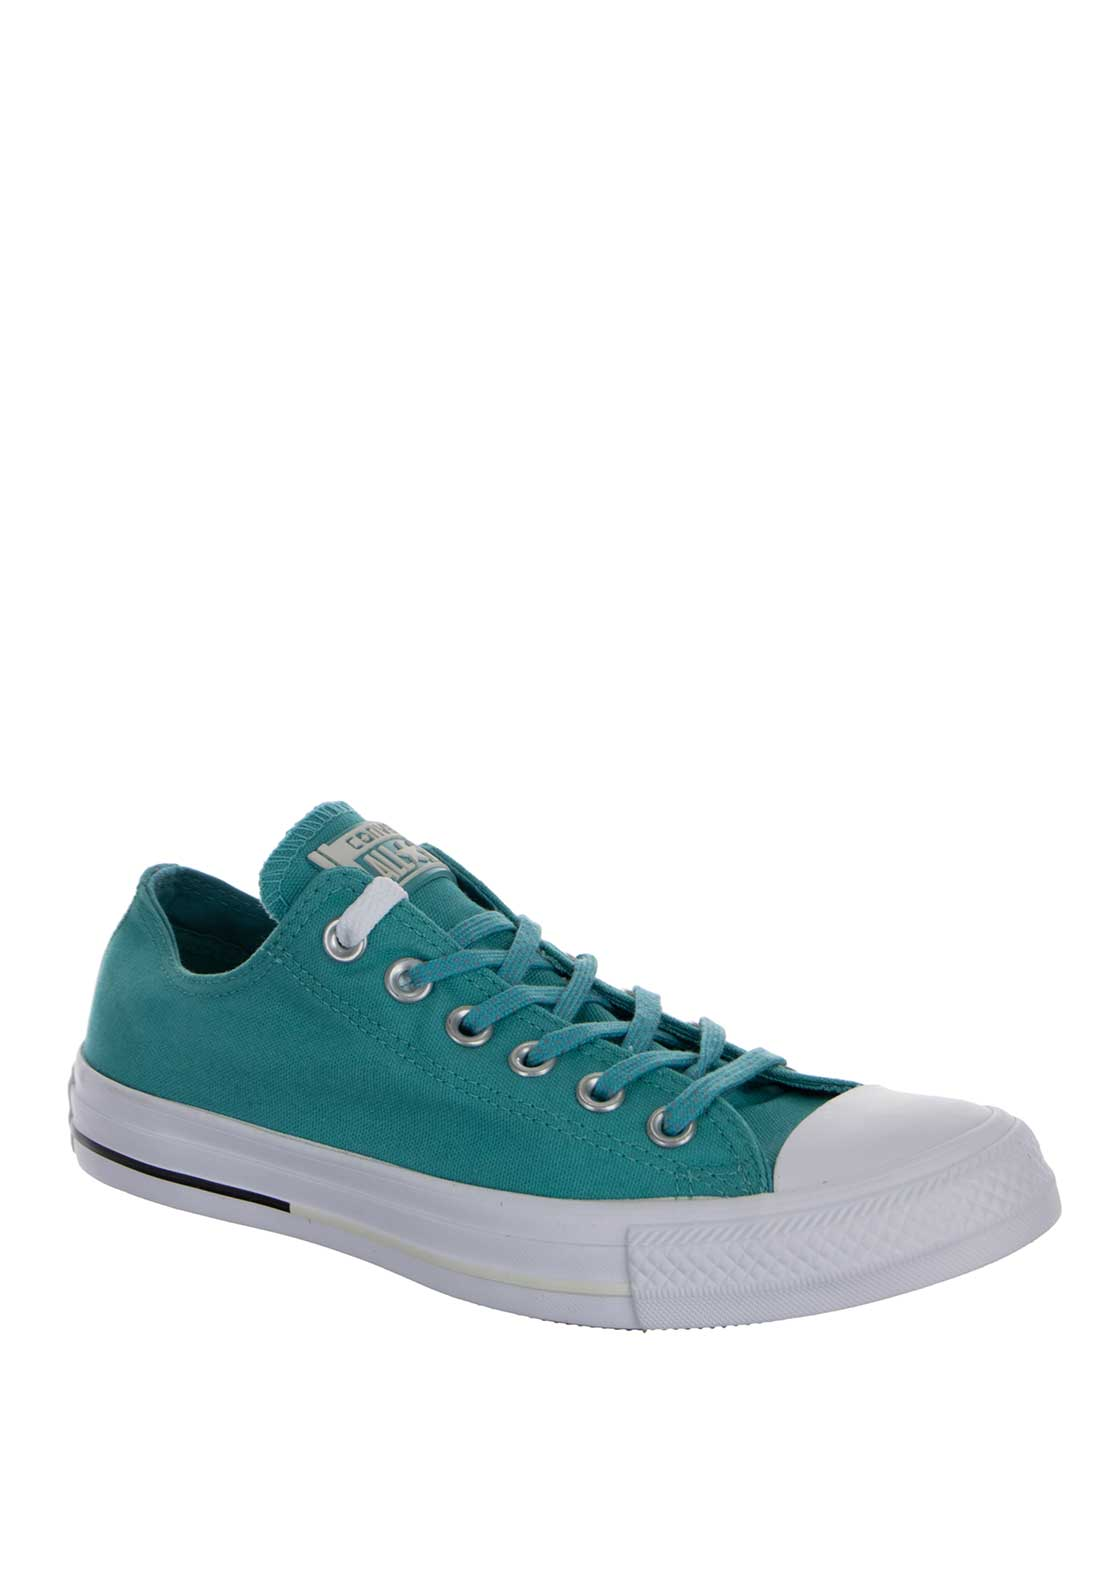 Converse Womens Chuck Taylor All Star Trainers, Aegean Blue